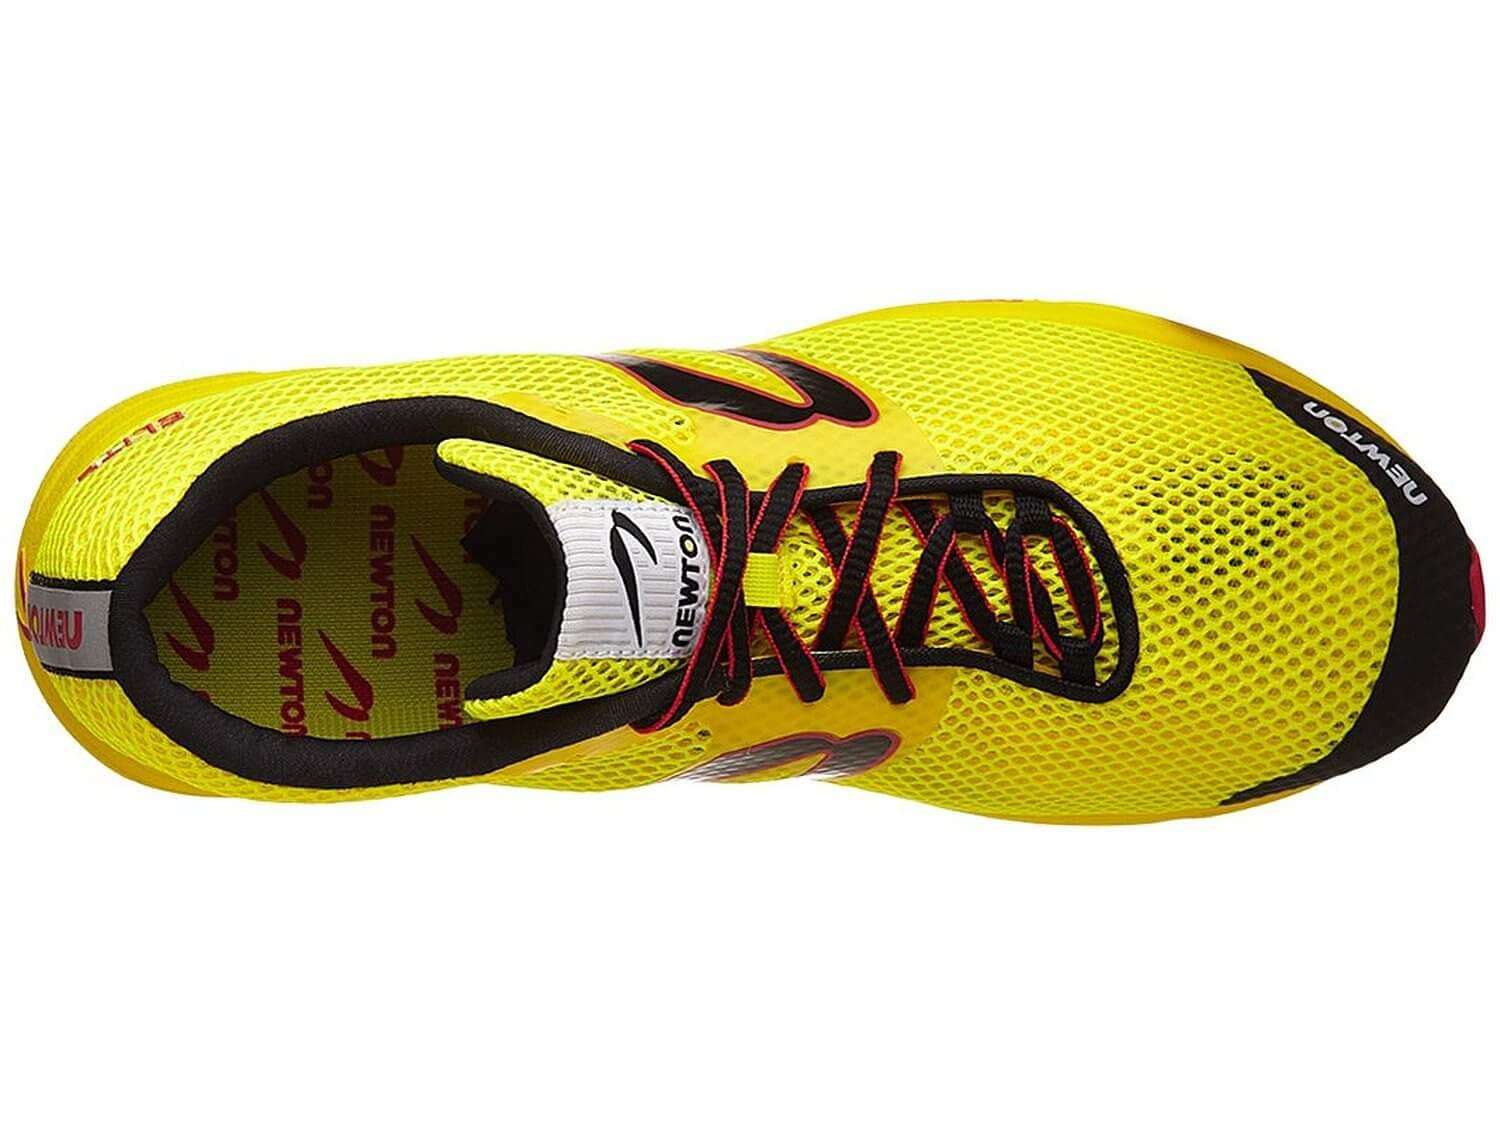 the upper of the Newton Distance Elite is made of a breathable upper mesh